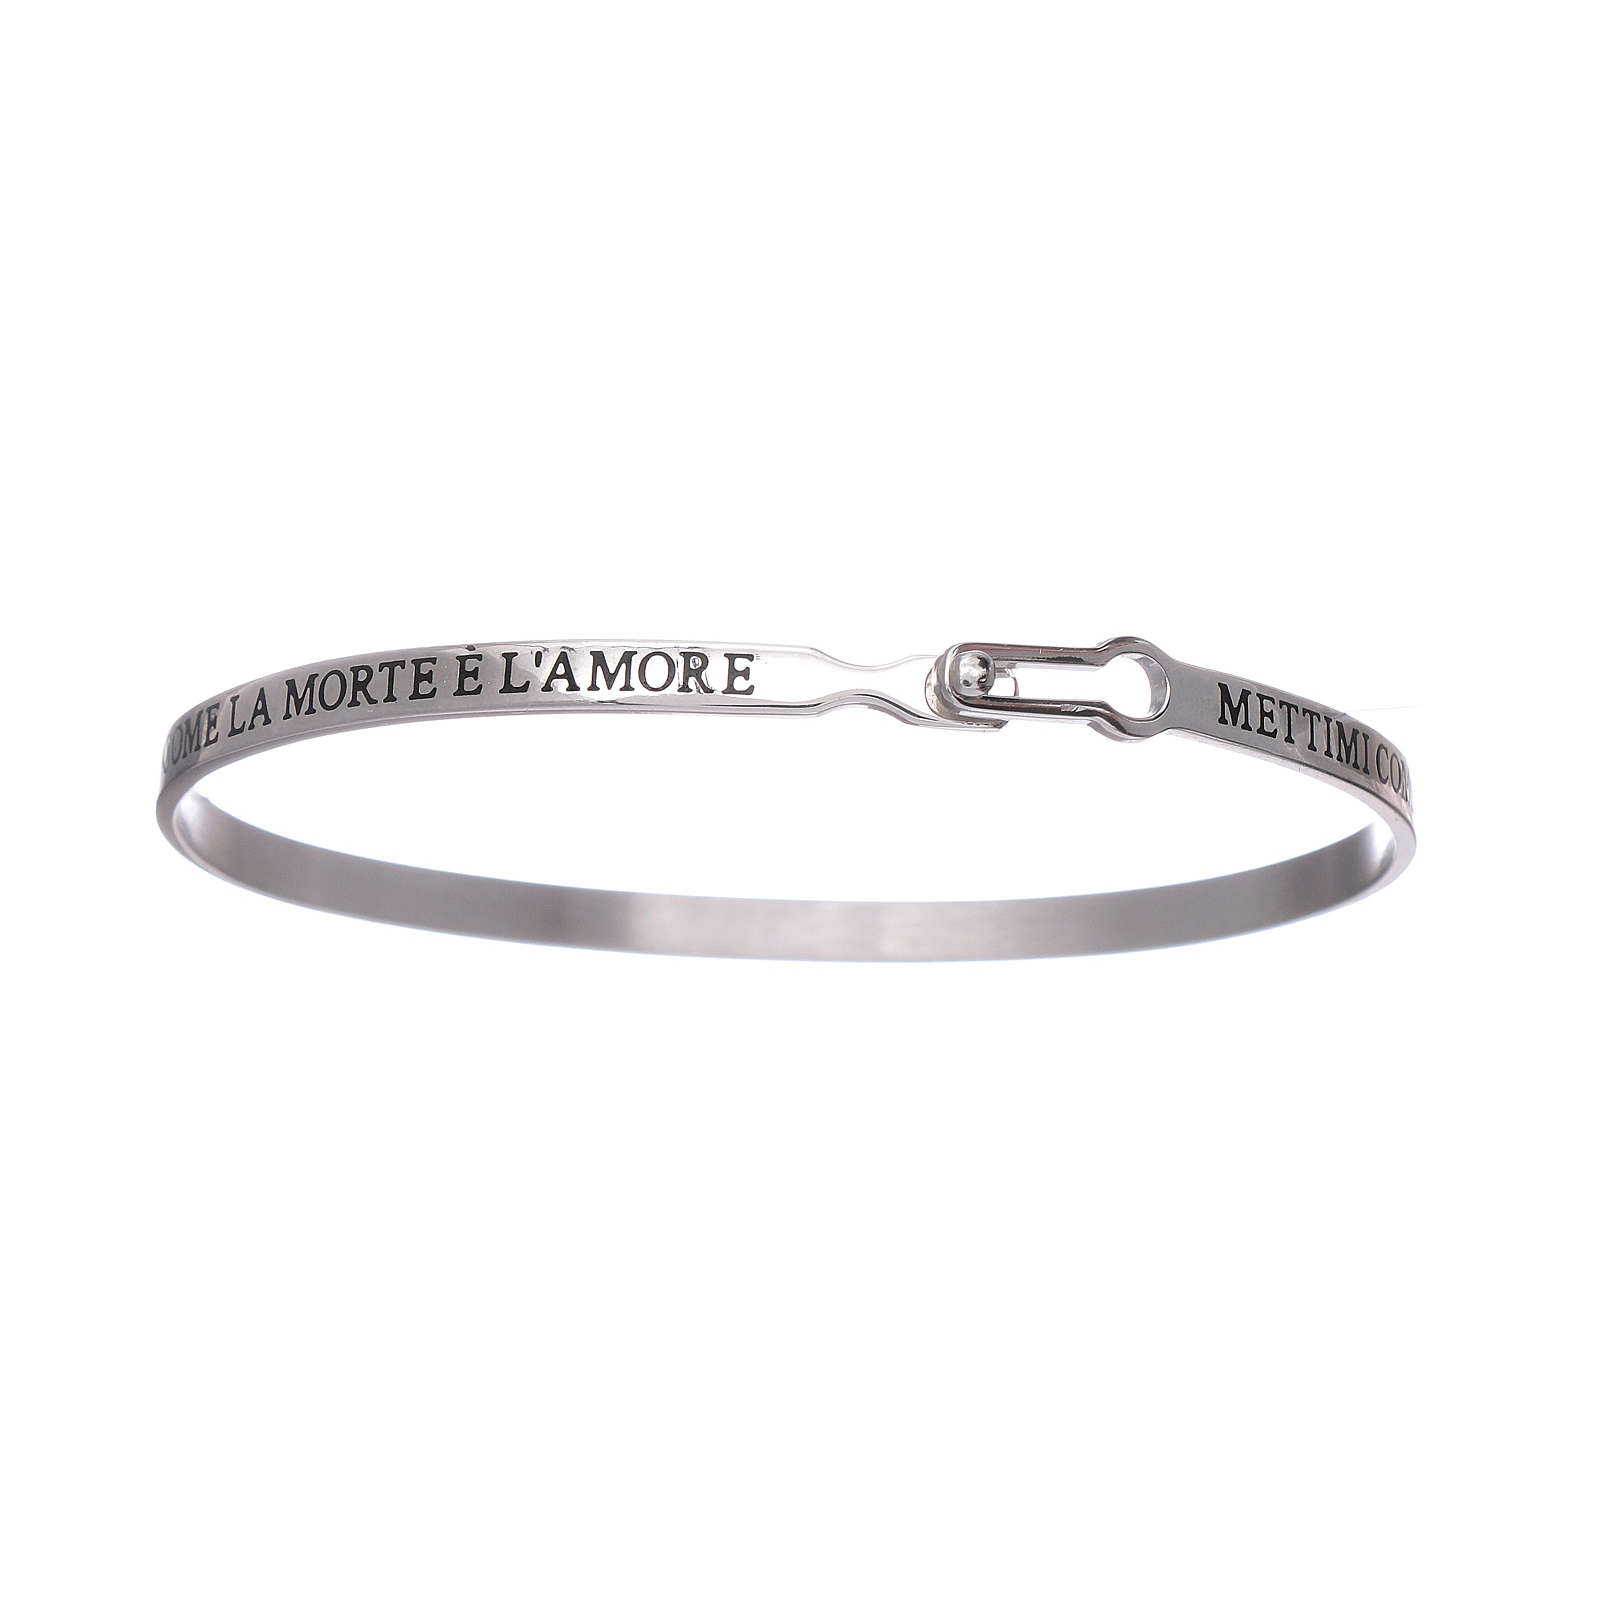 AMEN 925 sterling silver slave bracelet with writings 4